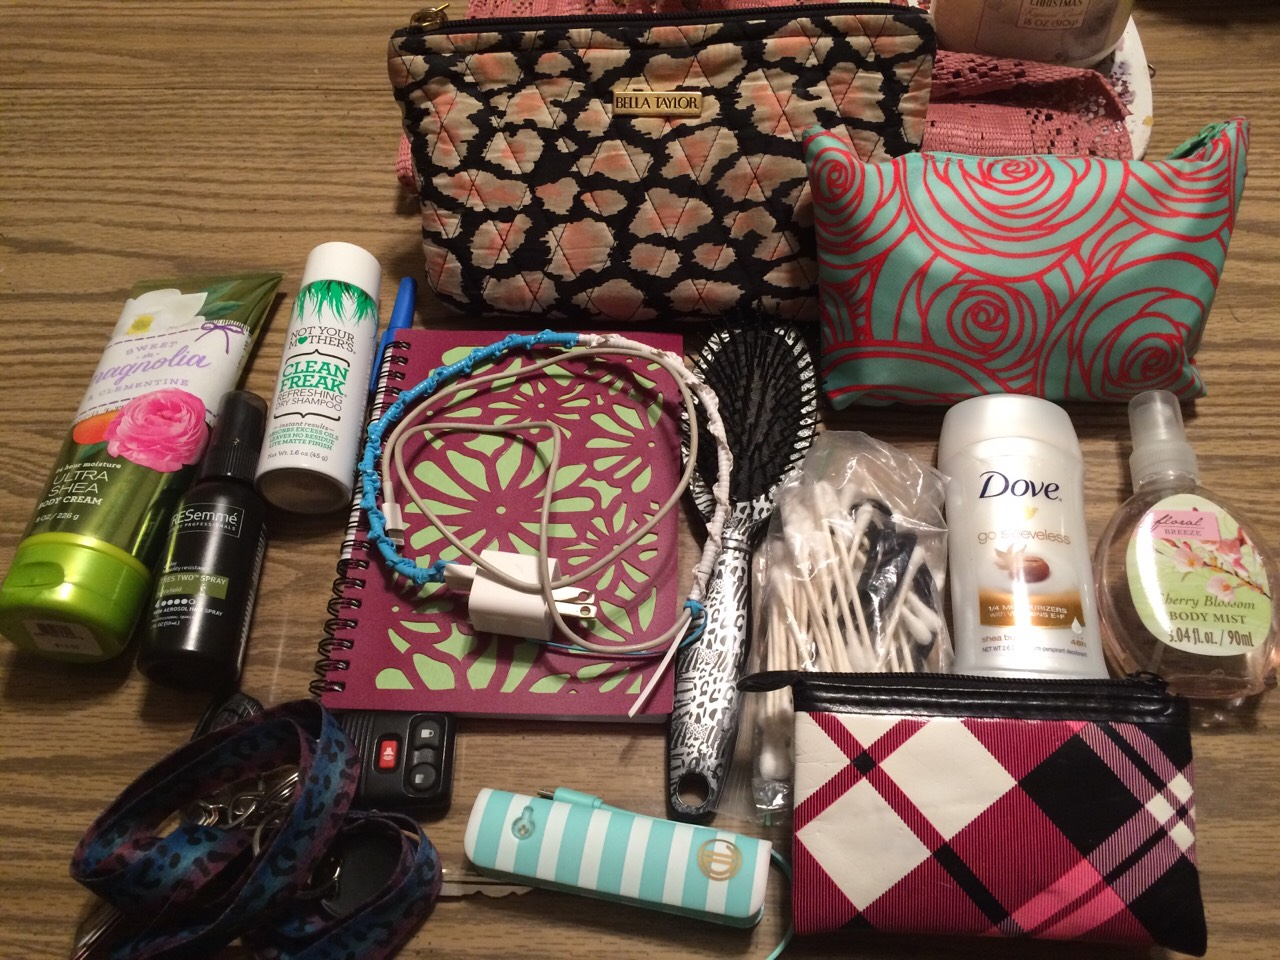 This is what's in the big part of my purse. Lotion, hairspray, dry shampoo, notebook/pen, keys, a brush, charger, power bank/charger (power bank has a flash light in it), a bag (with q tips, Bobby pins, & hair ties), deodorant, perfume, gum, make-up bag, wallet, & a first aid kit.